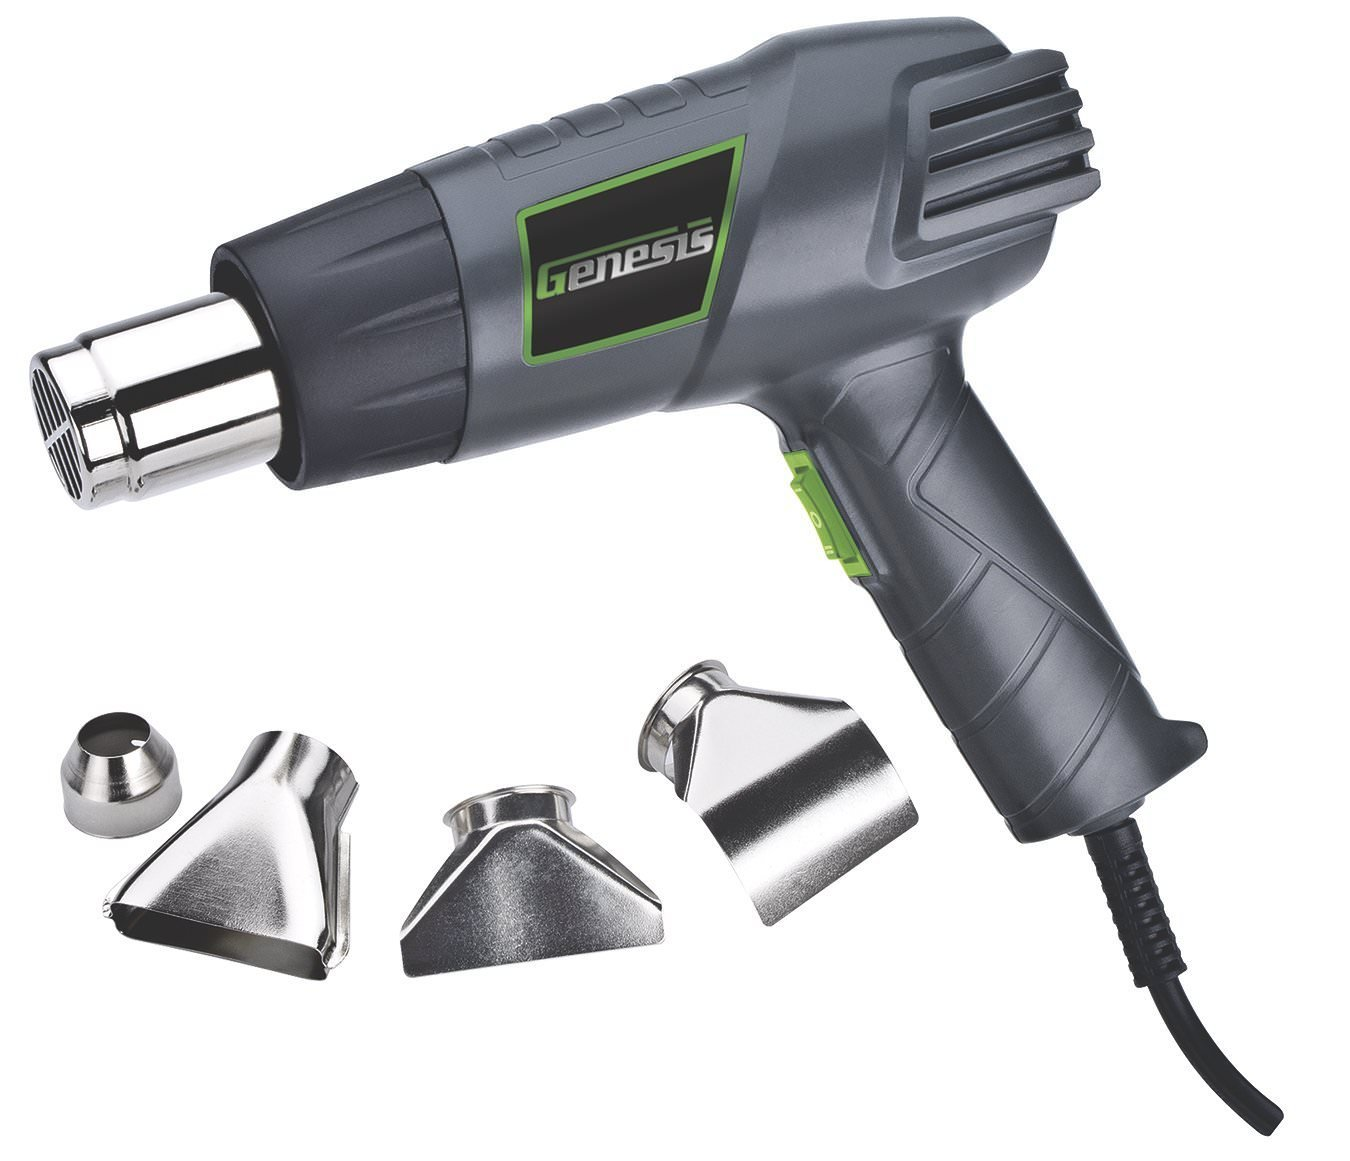 Genesis SulCXy GHG1500A Dual Temperature Heat Gun Kit with Four Metal Nozzle Attachments, 3 Units